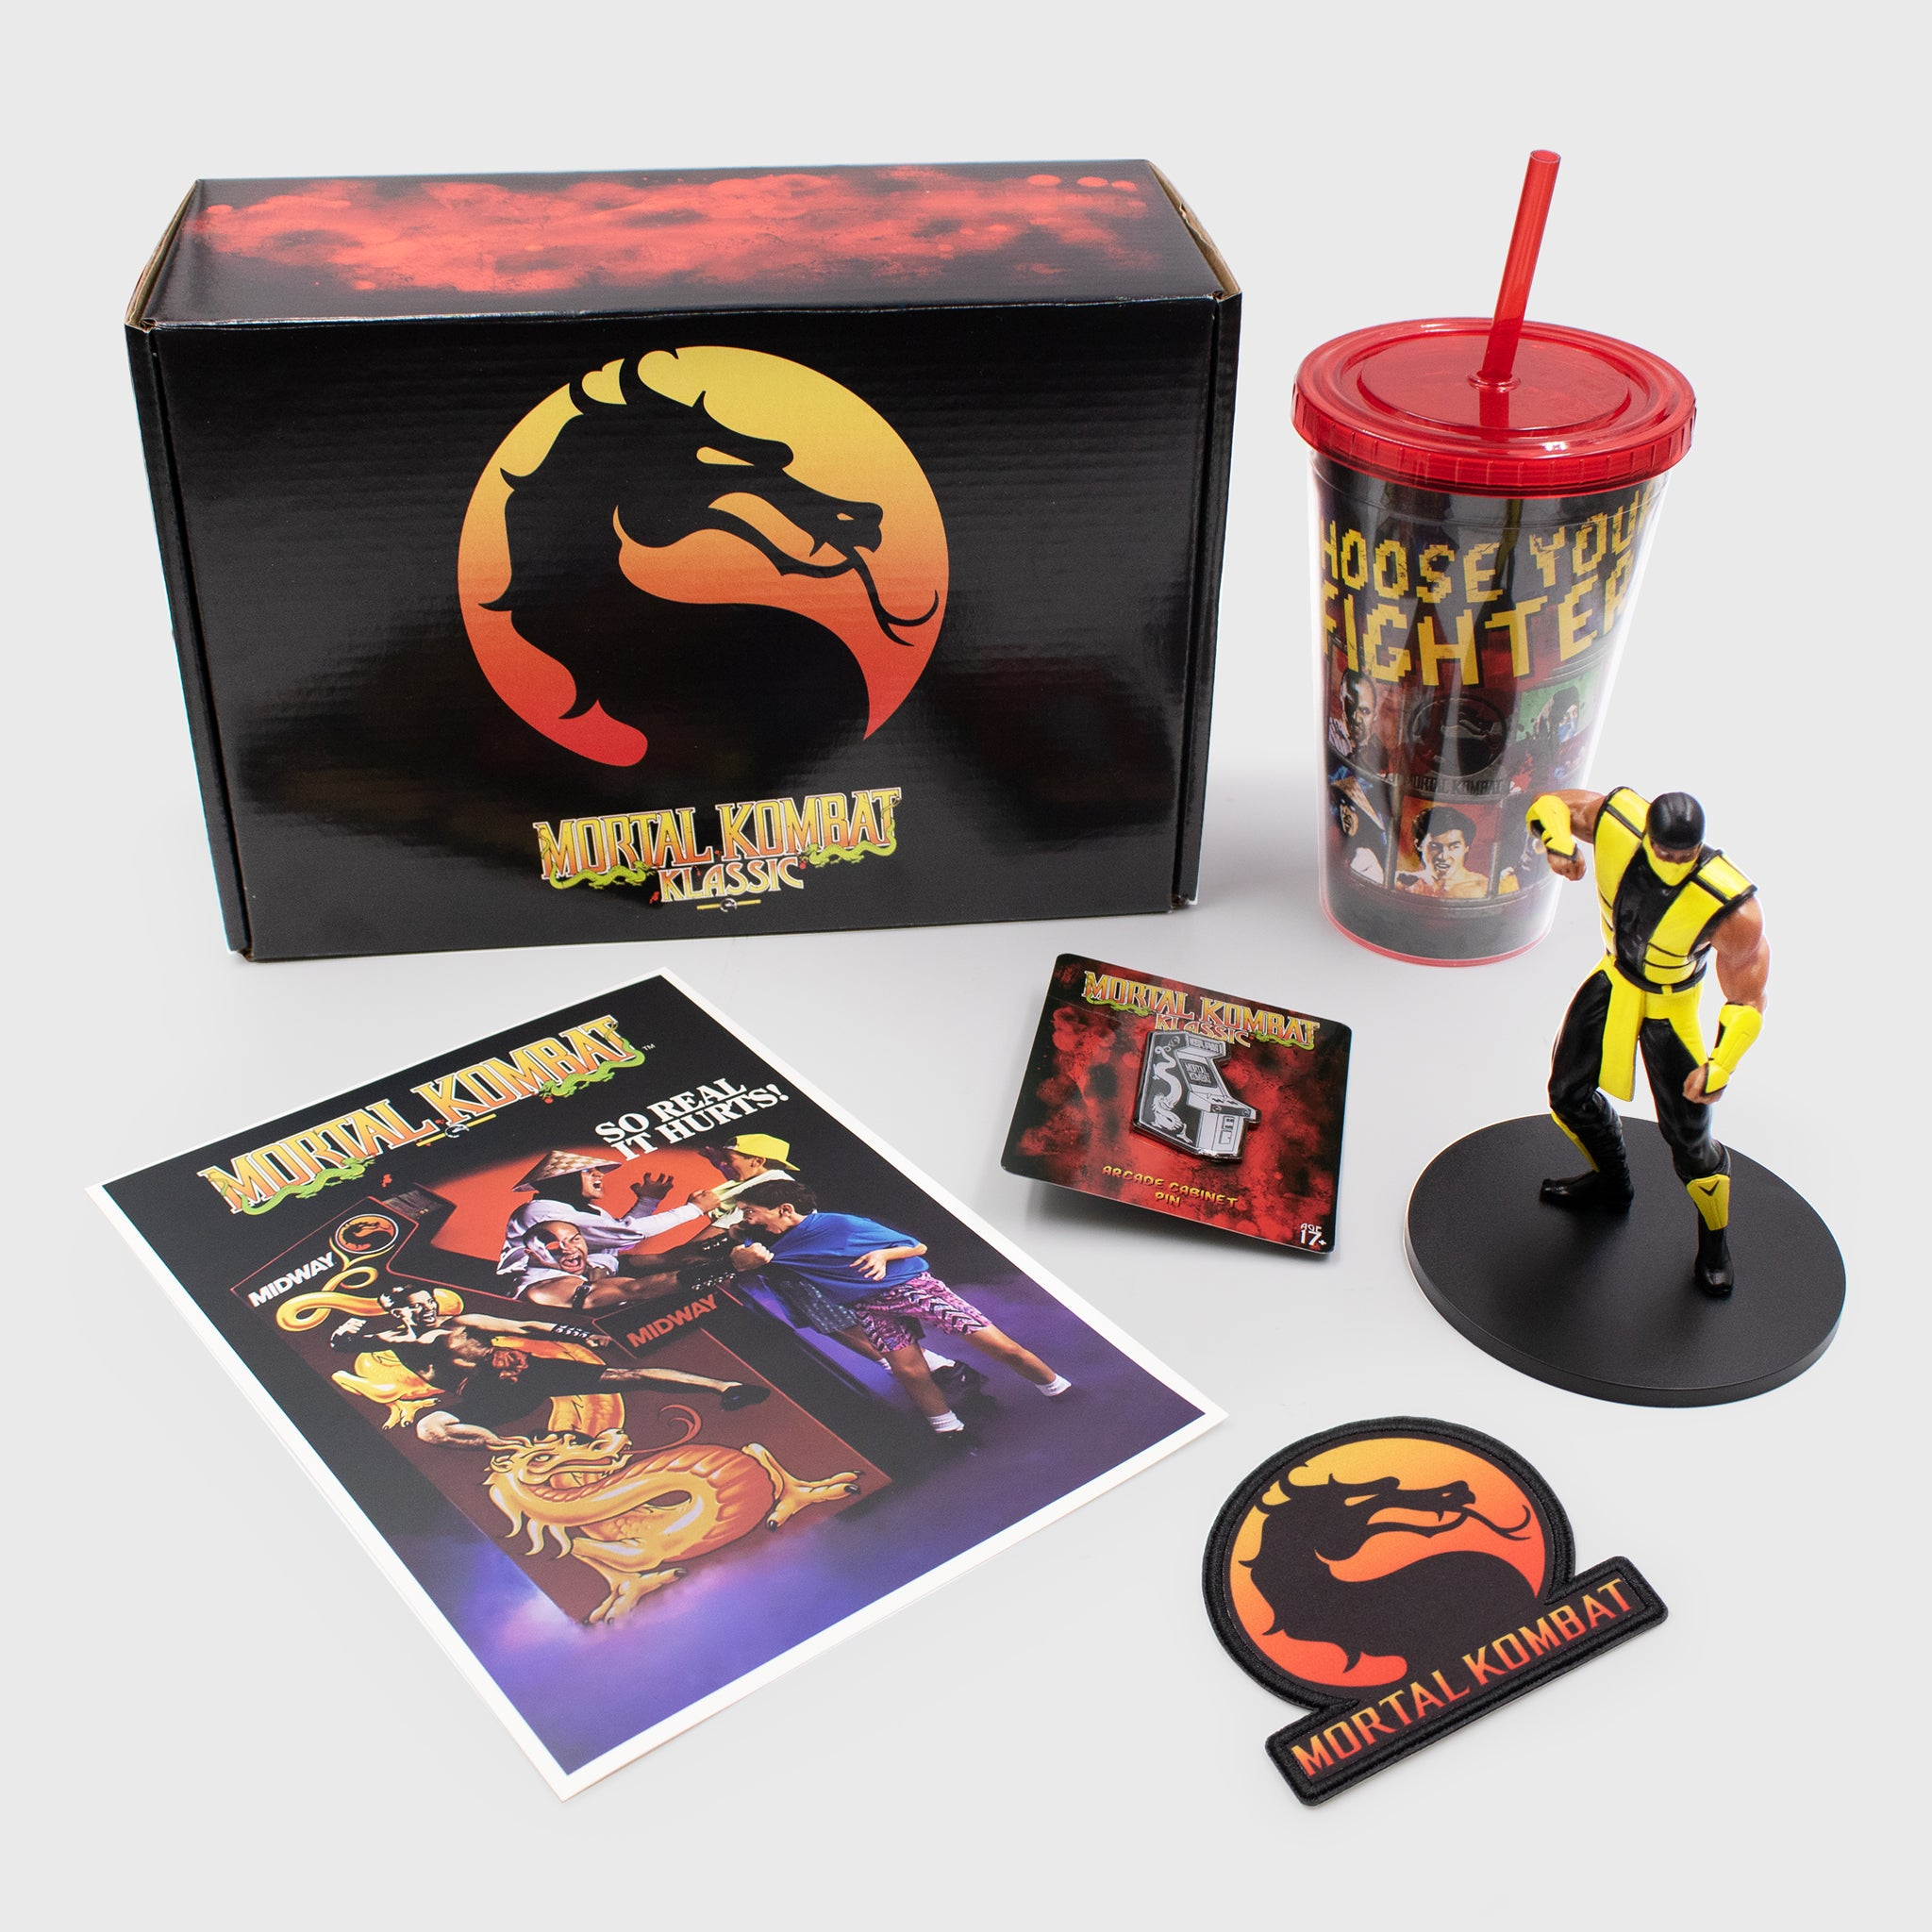 Mortal Kombat Collector's Box